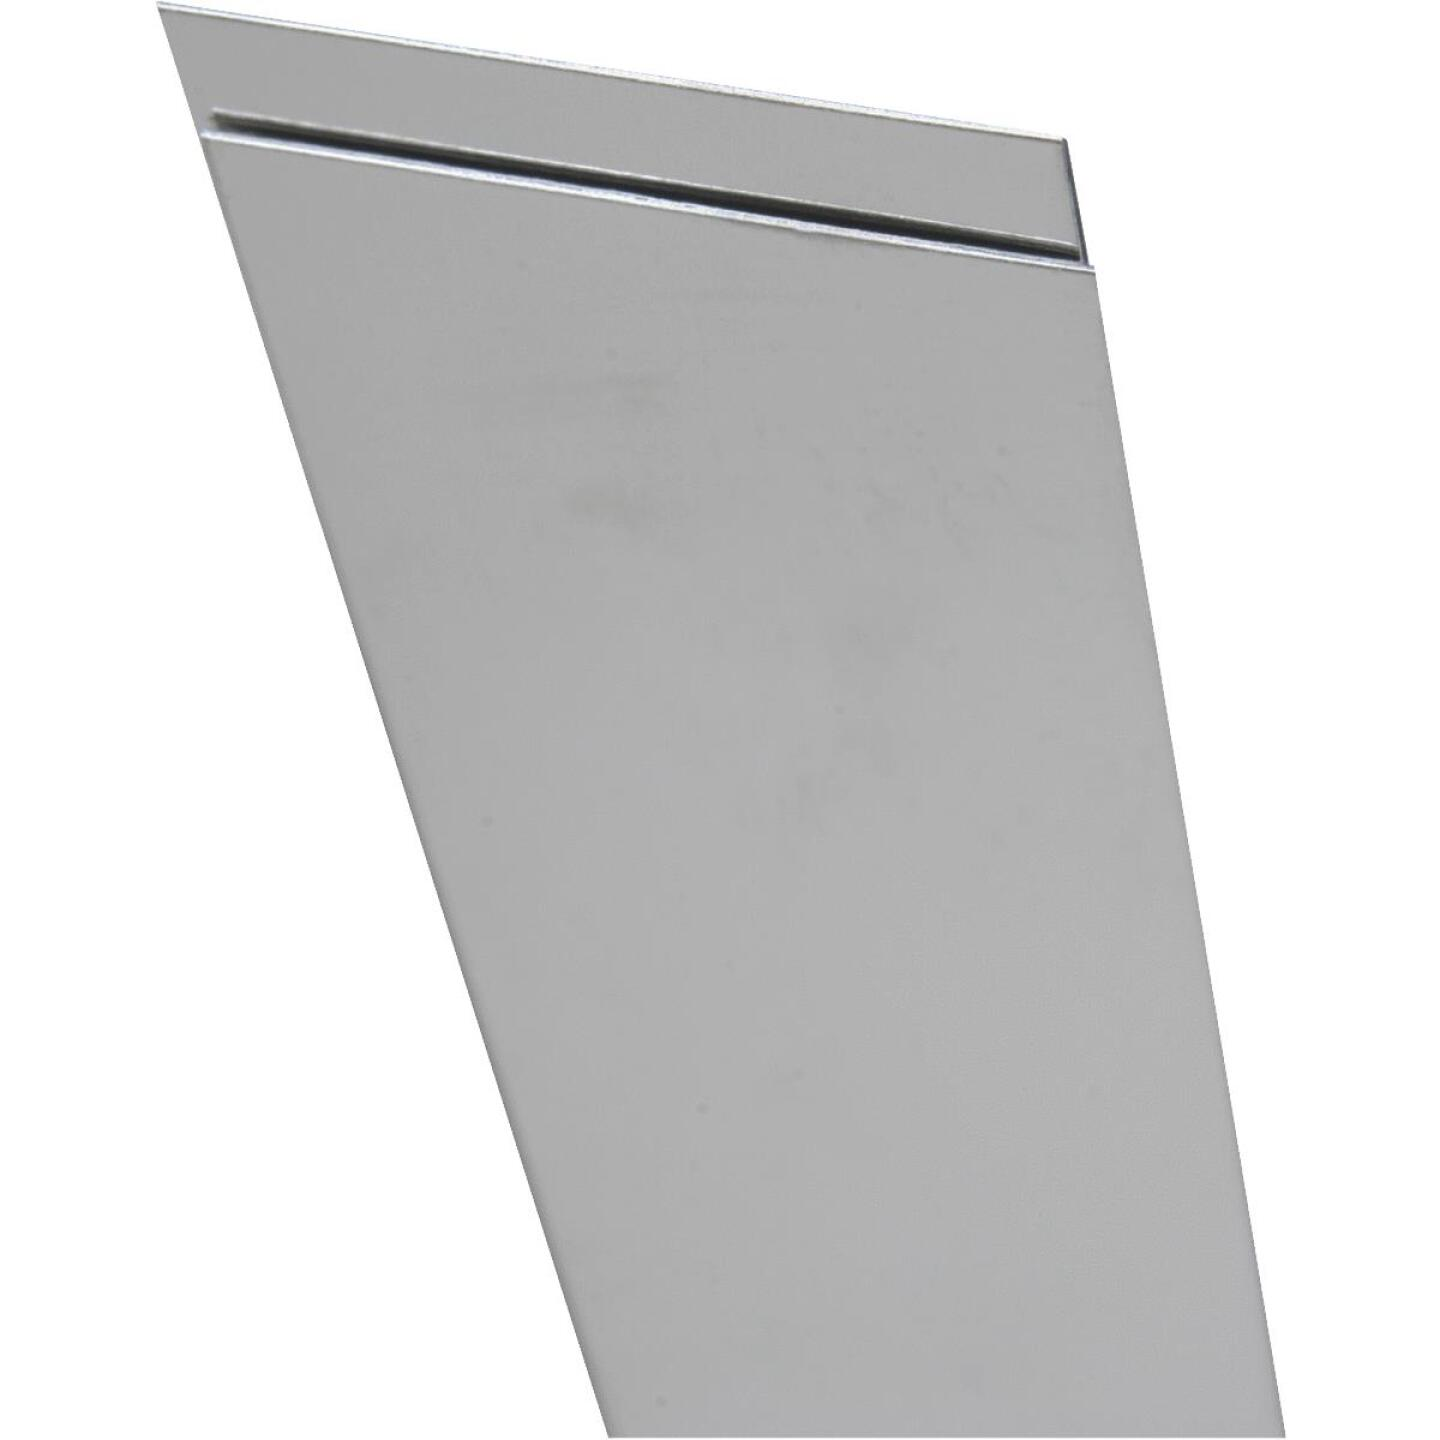 K&S 4 In. x 10 In. x .018 In. Stainless Steel Sheet Stock Image 1